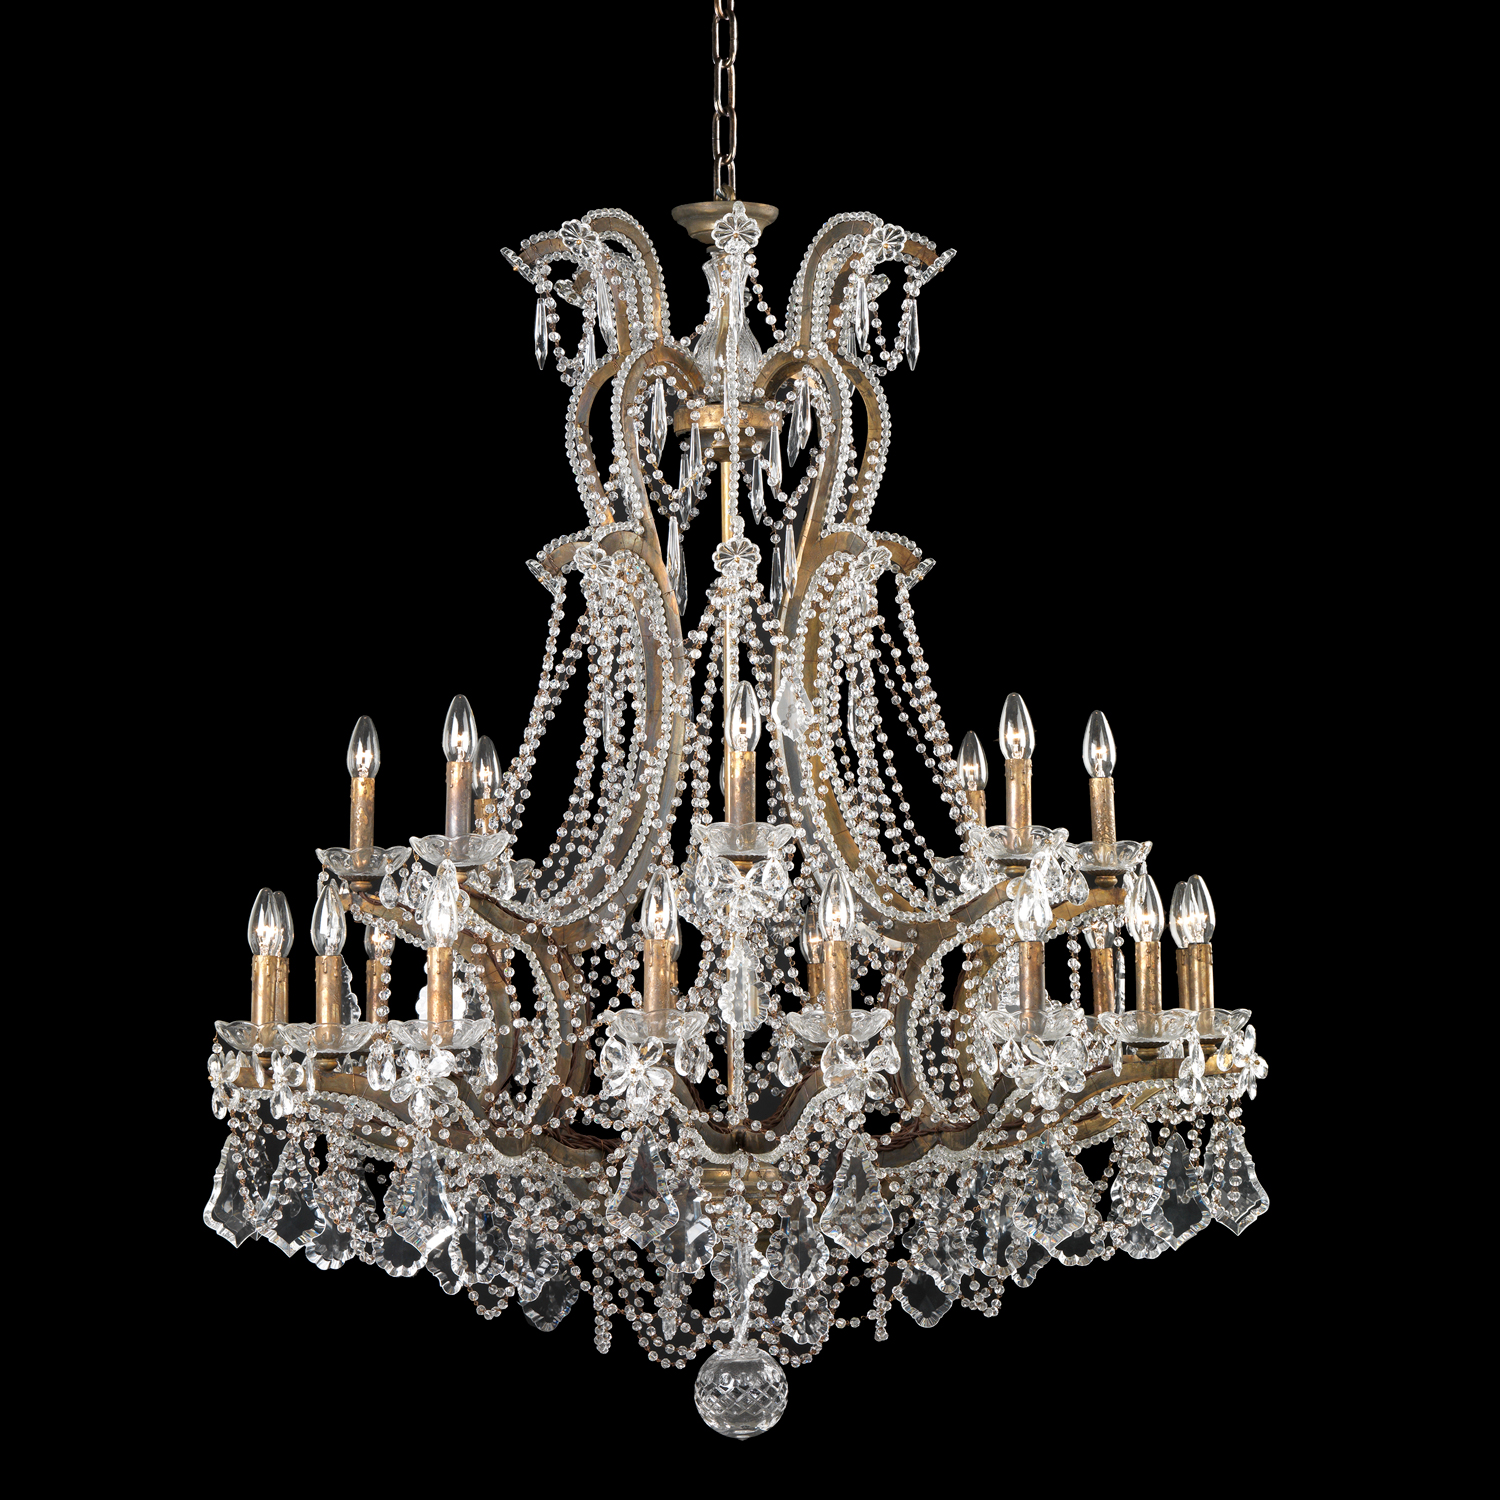 Handcrafted Lighting Designs by Badari badari Handcrafted Lighting Designs by Badari isaloni 2019 Mesmerizing Handcrafted Lighting Designs by Badari Chandelier Firenze 2016